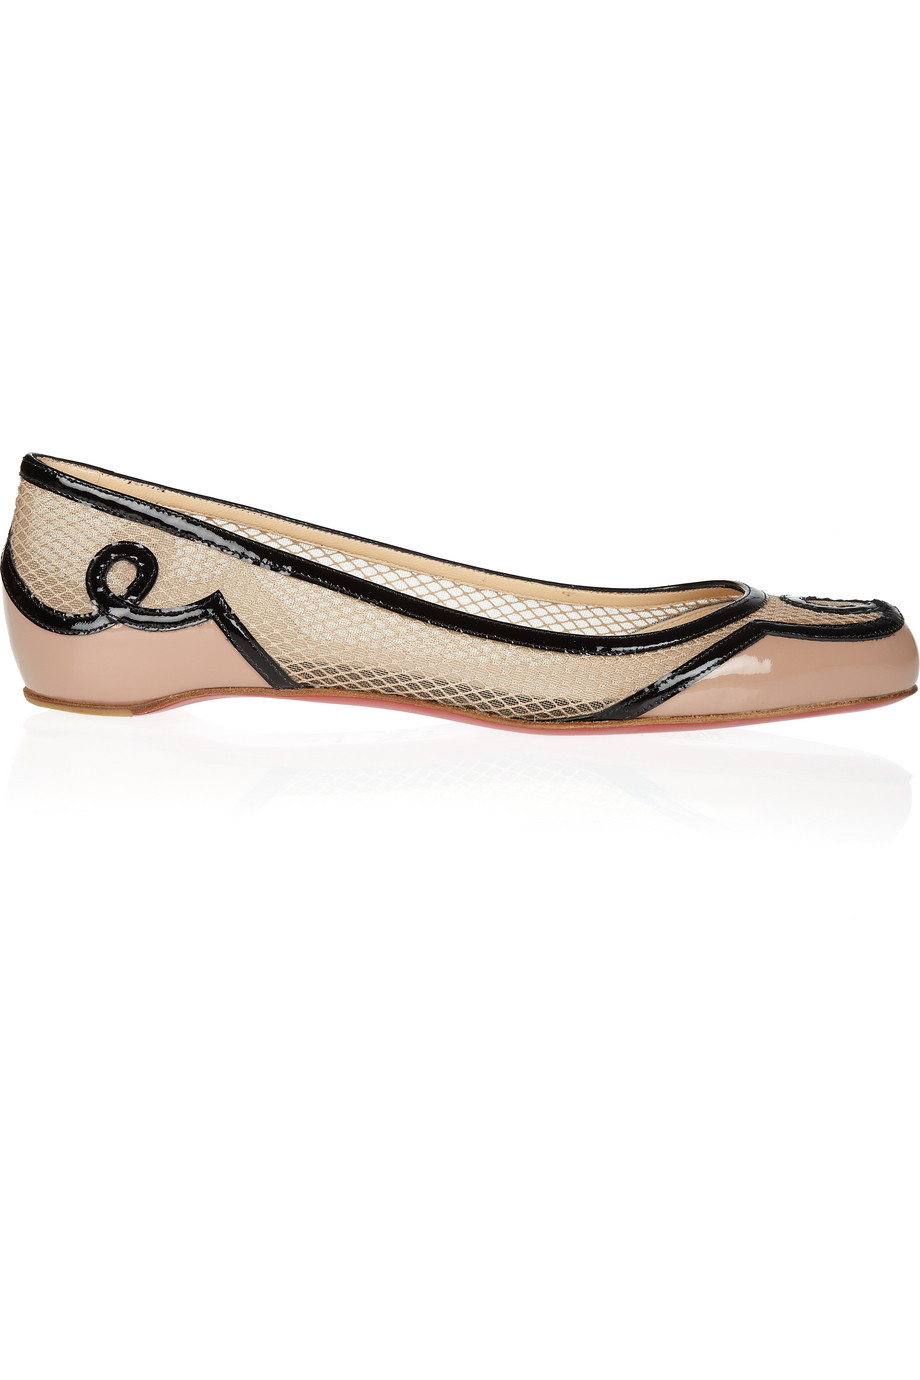 christian louboutin leather d'orsay flats